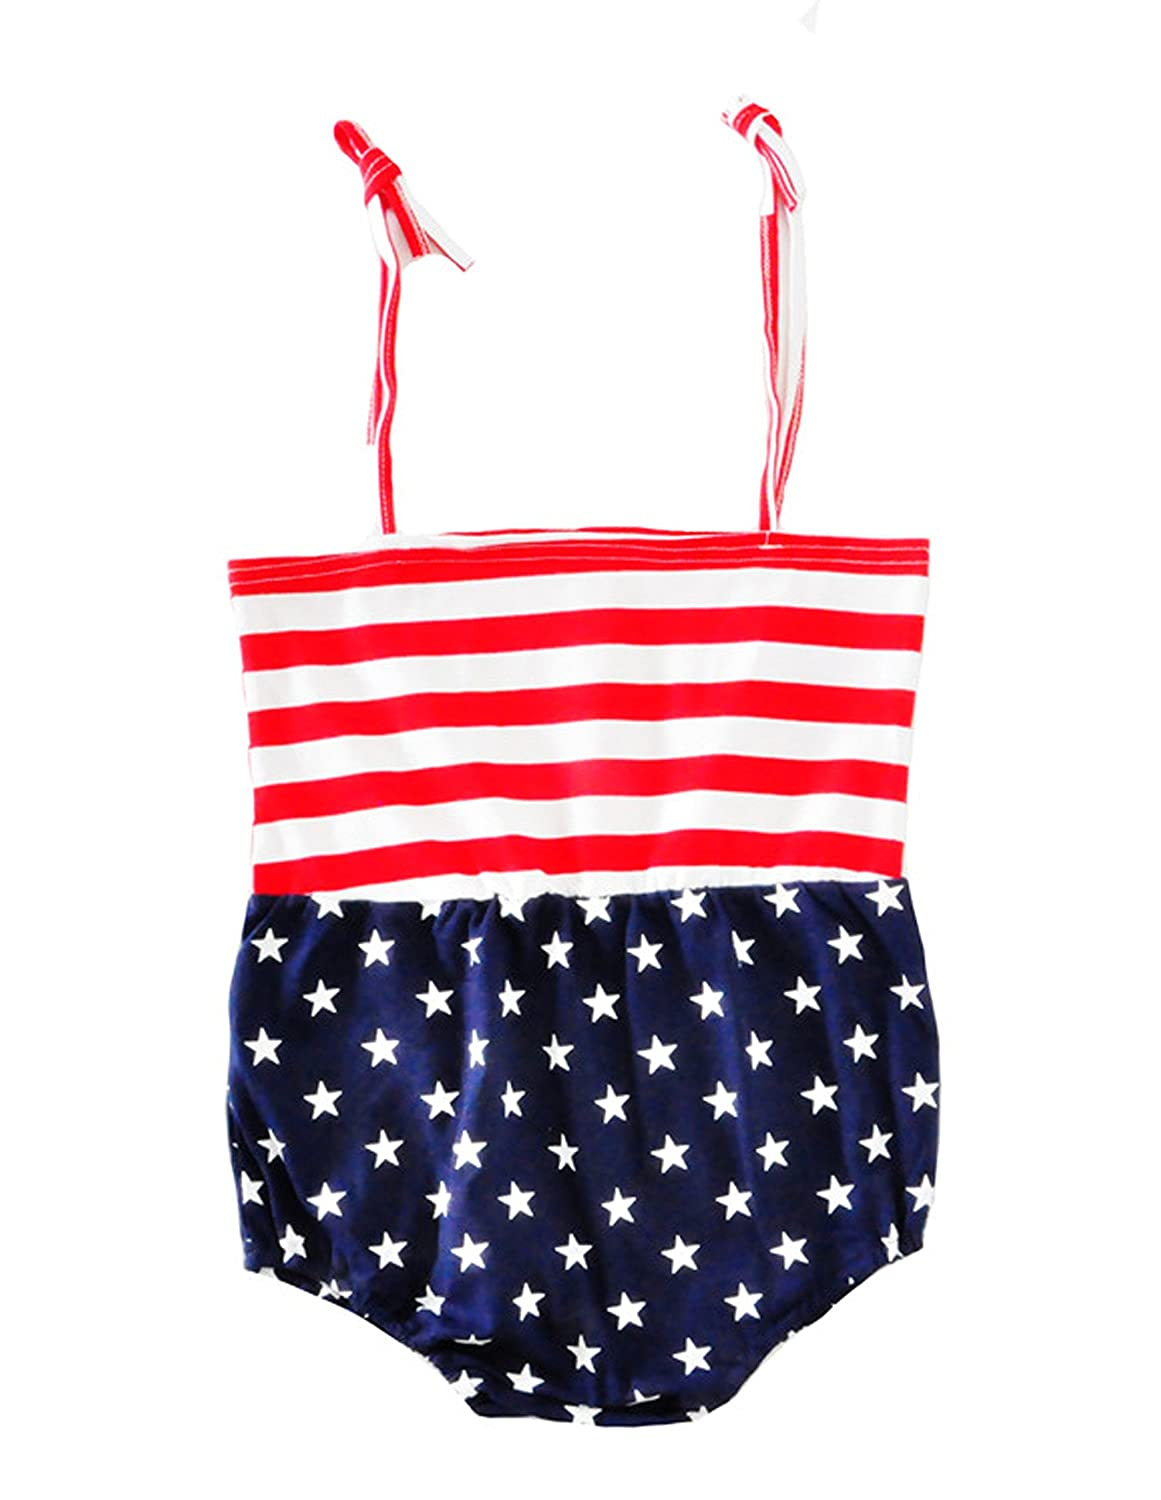 Headband NOMSOCR Infant Baby Girls Summer Halter One-Pieces Rompers American Flag Jumpsuit Bodysuit Outfits Clothes